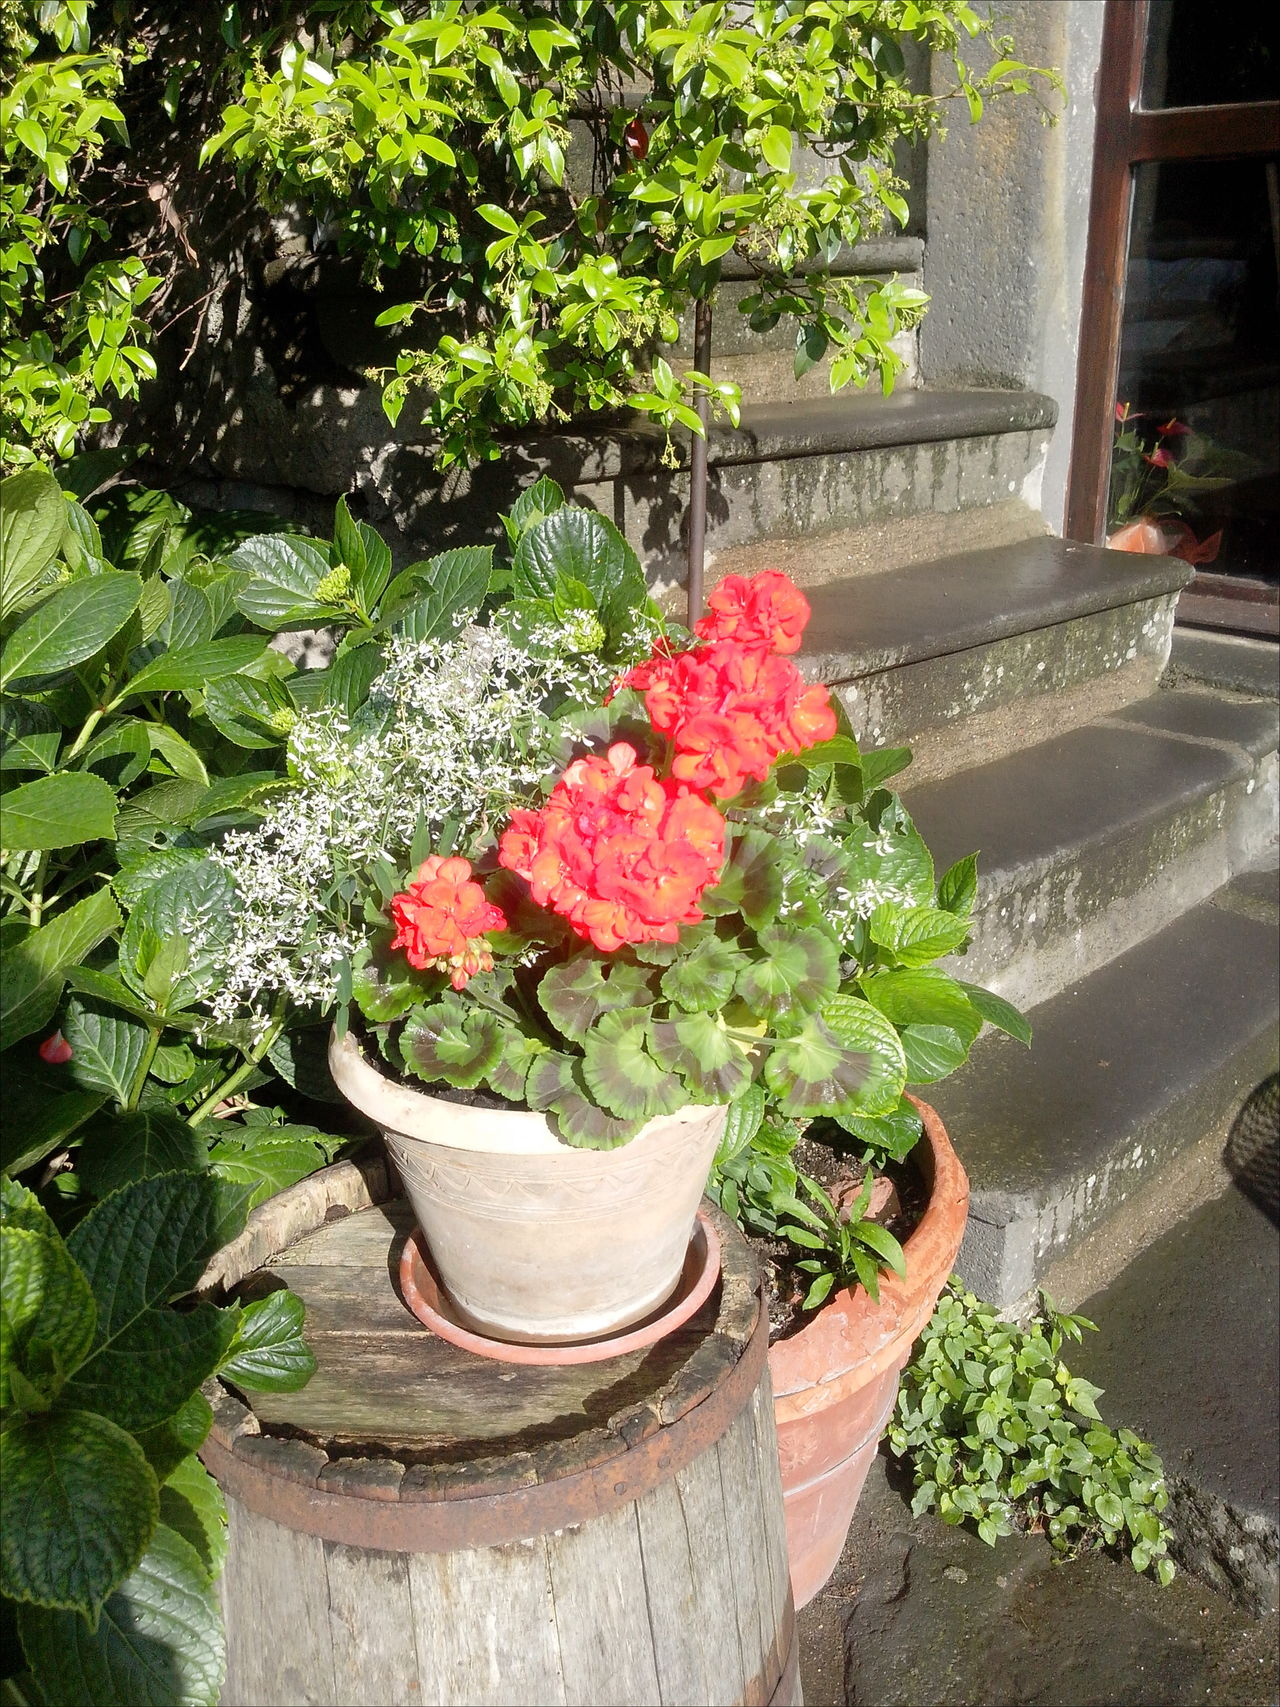 Blooming Blossom Civita Di Bagnoregio Close-up Flower Flower Pot Freshness Front Or Back Yard Growth In Bloom Petal Plant Potted Plant Stairway The City That Is Dying Tuff Tufo World Monuments Fund